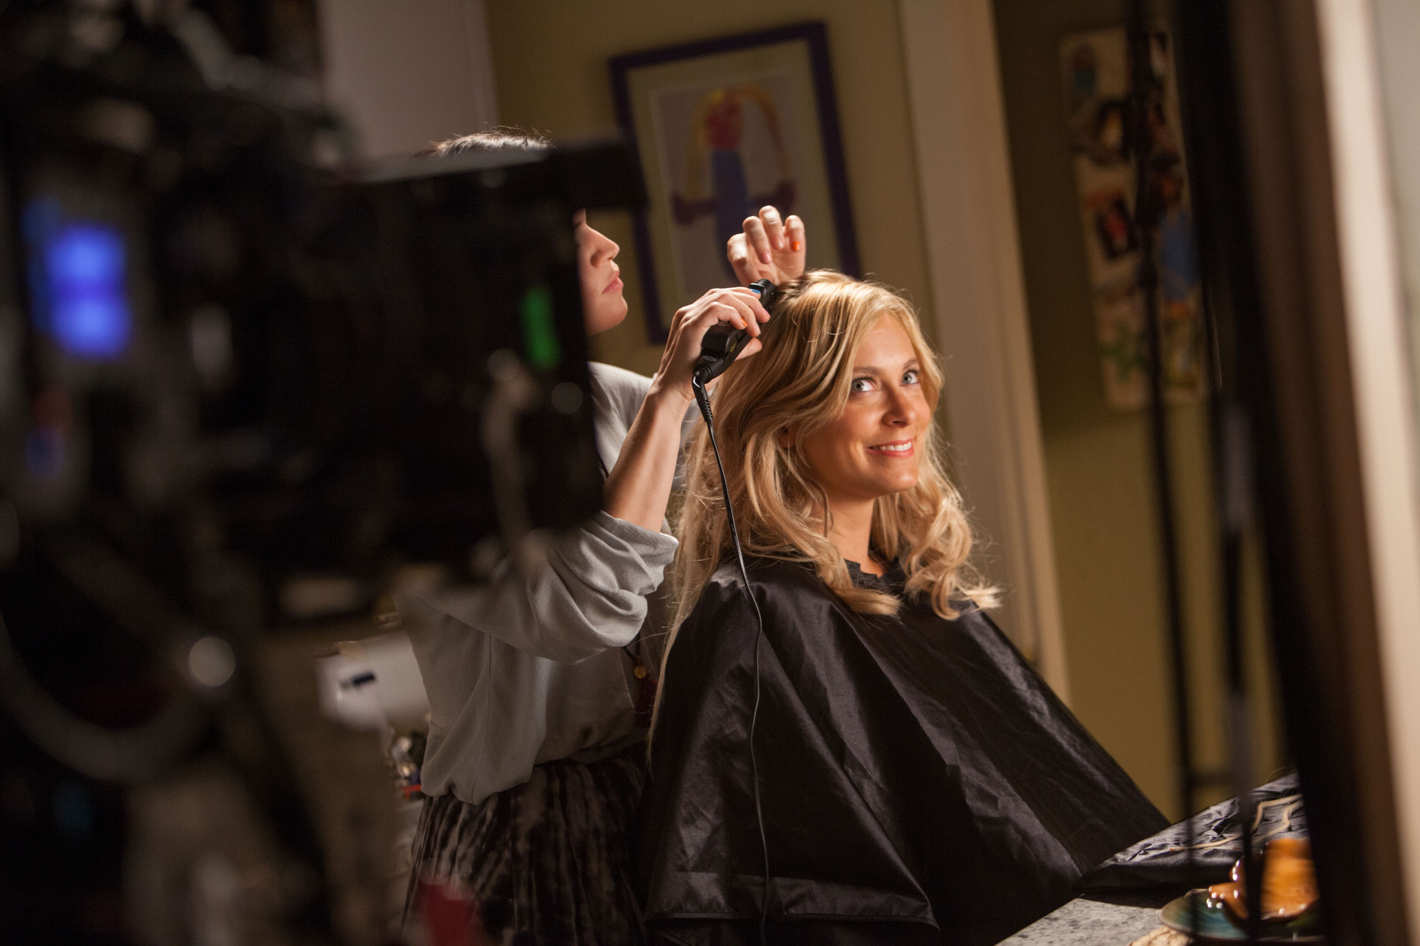 the story behind rebecca bunch's blonde makeover on crazy ex-girlfriend